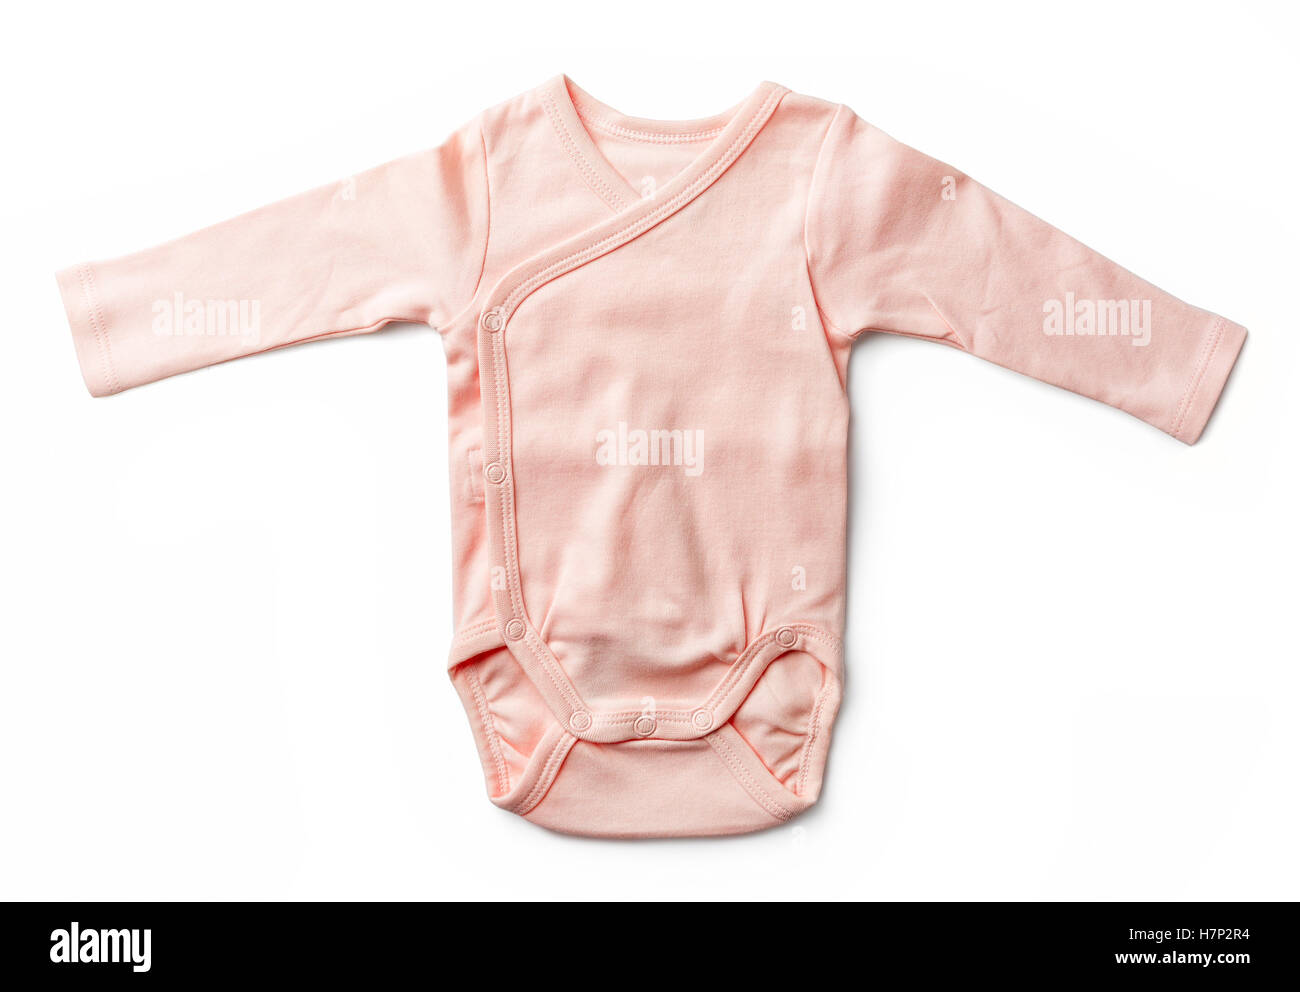 Pink baby girl's bodysuit isolated on white background, top view - Stock Image